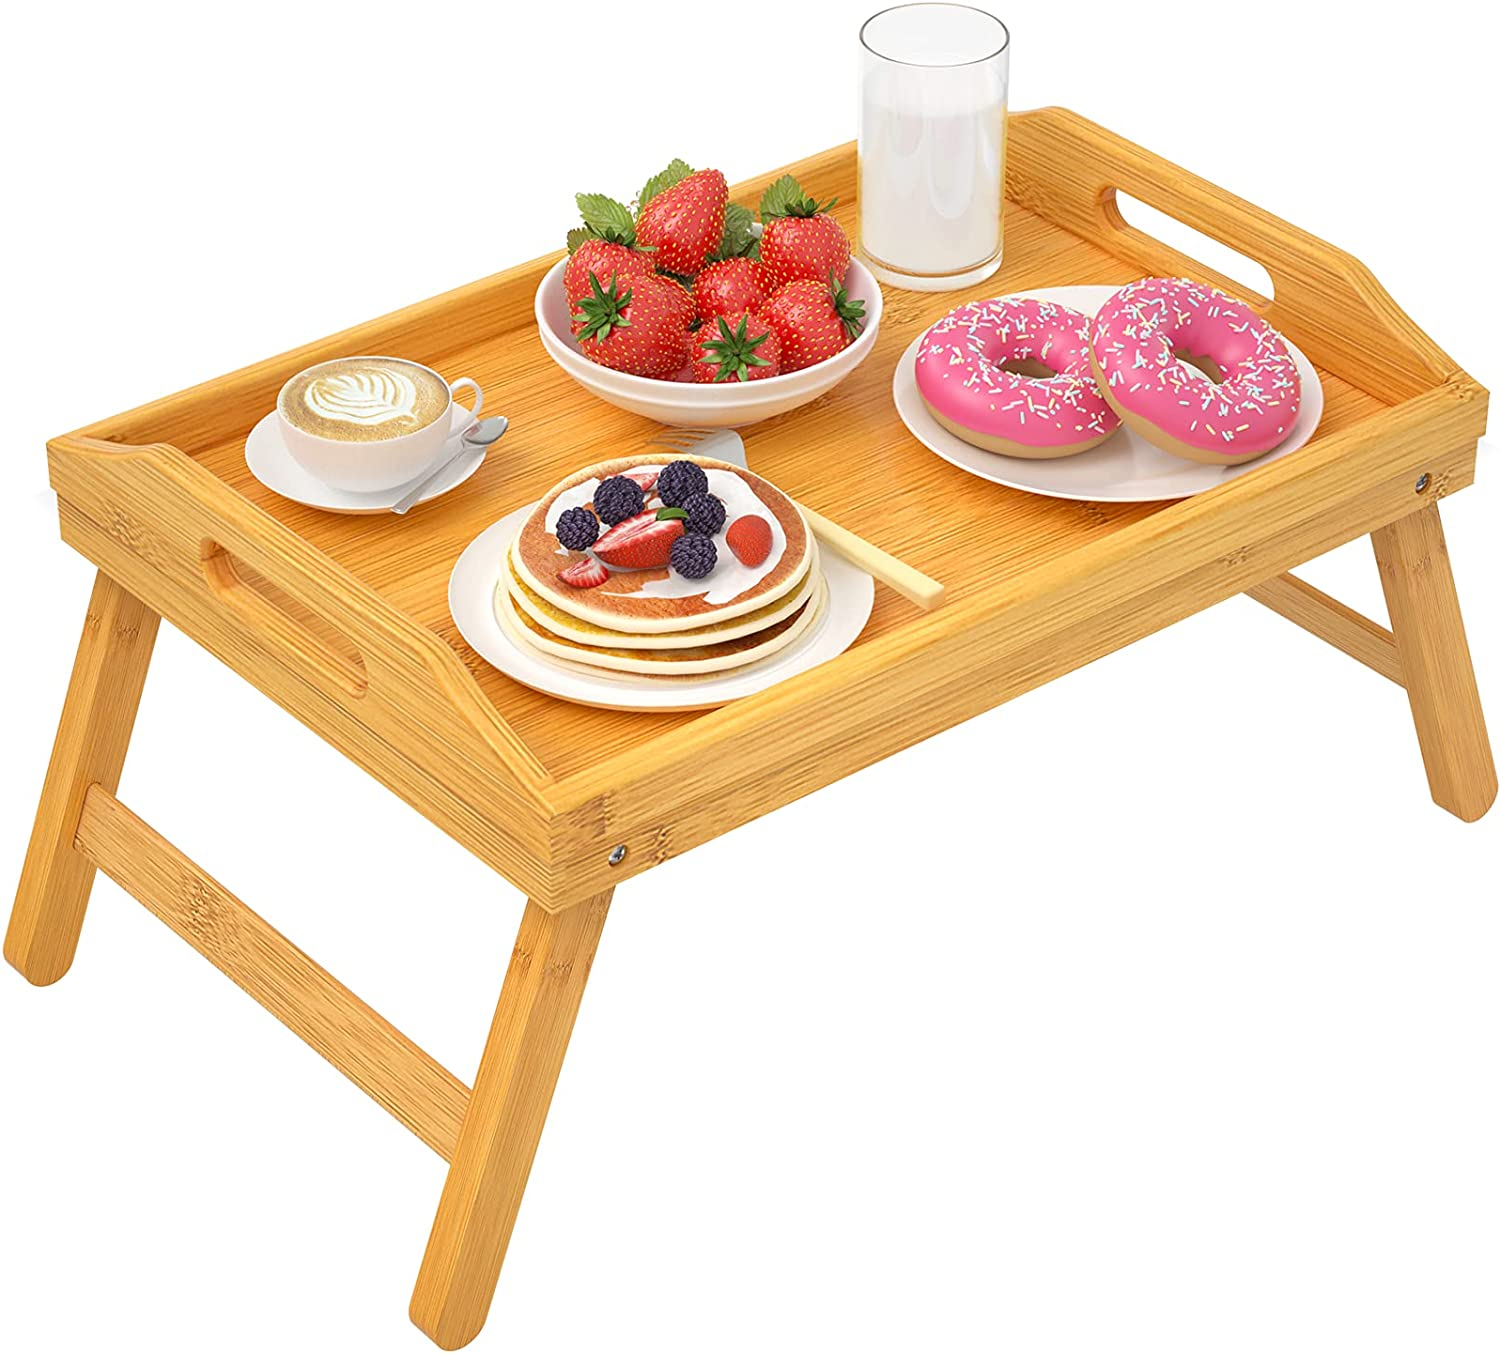 Bamboo Bed Tray Breakfast Food Tray Serving Platters Tray with Handles Folding Legs for Eating, Reading, Working, Drawing Foldable Wood Table by STOREMIC